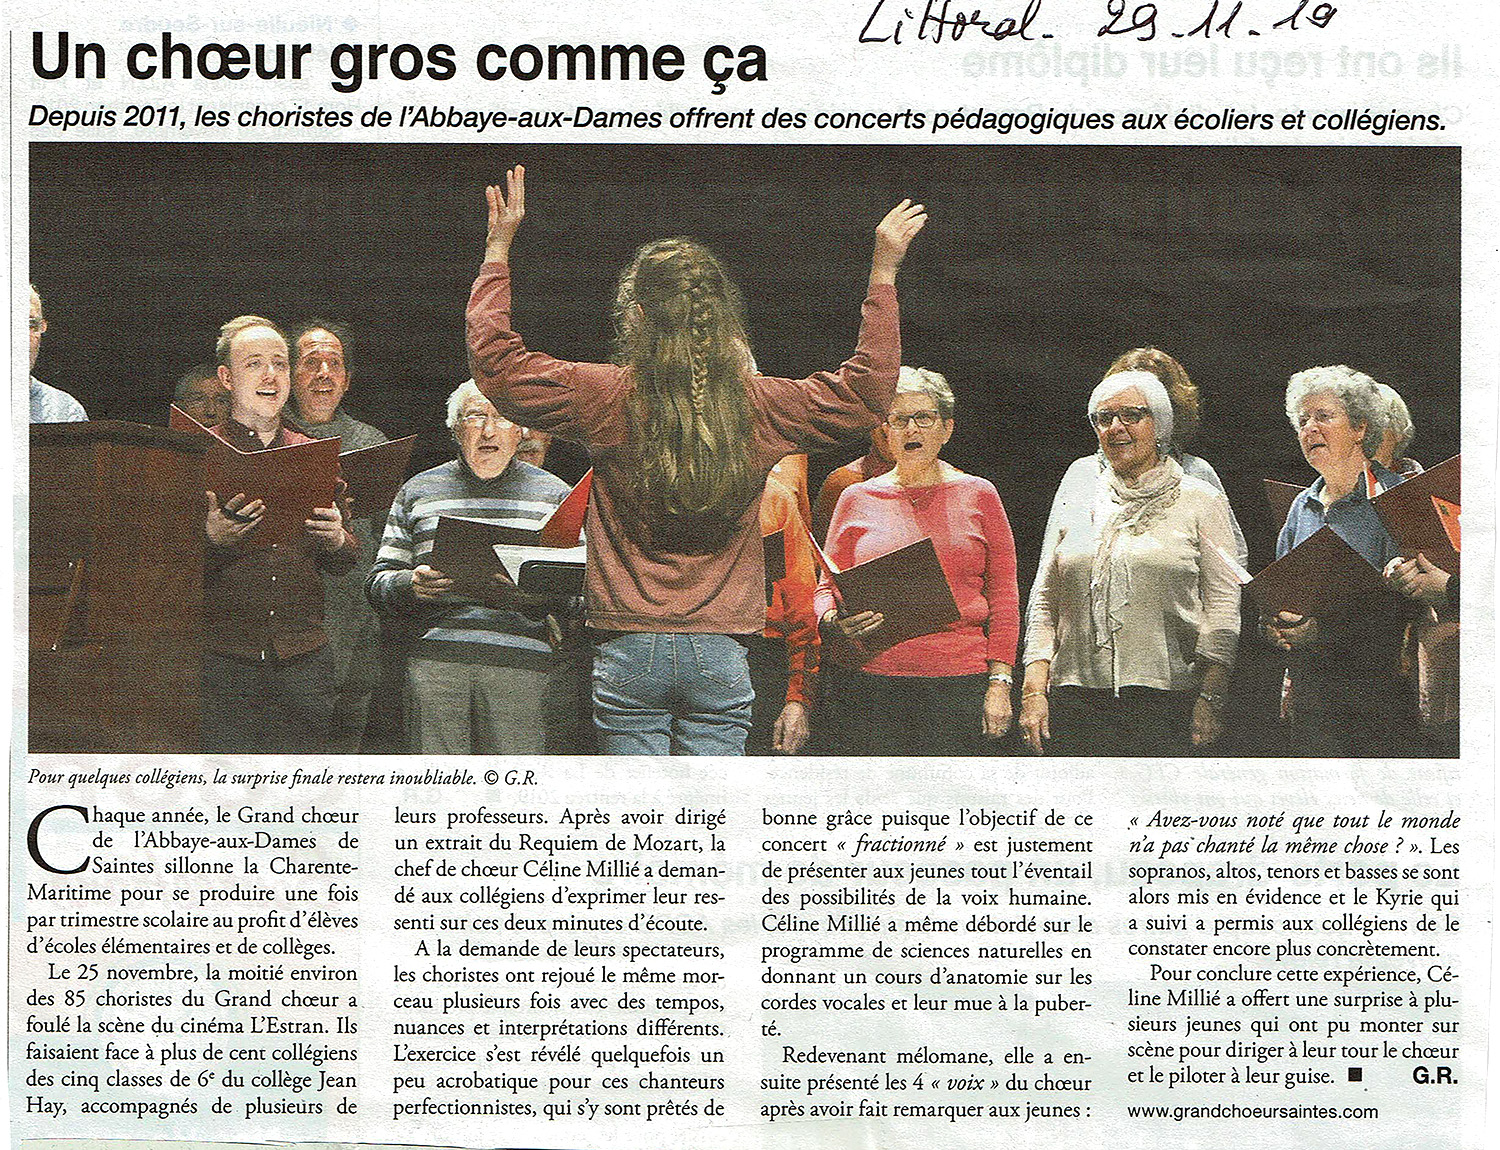 Grand Choeur Saintes - Article Le Littoral - Novembre 2019